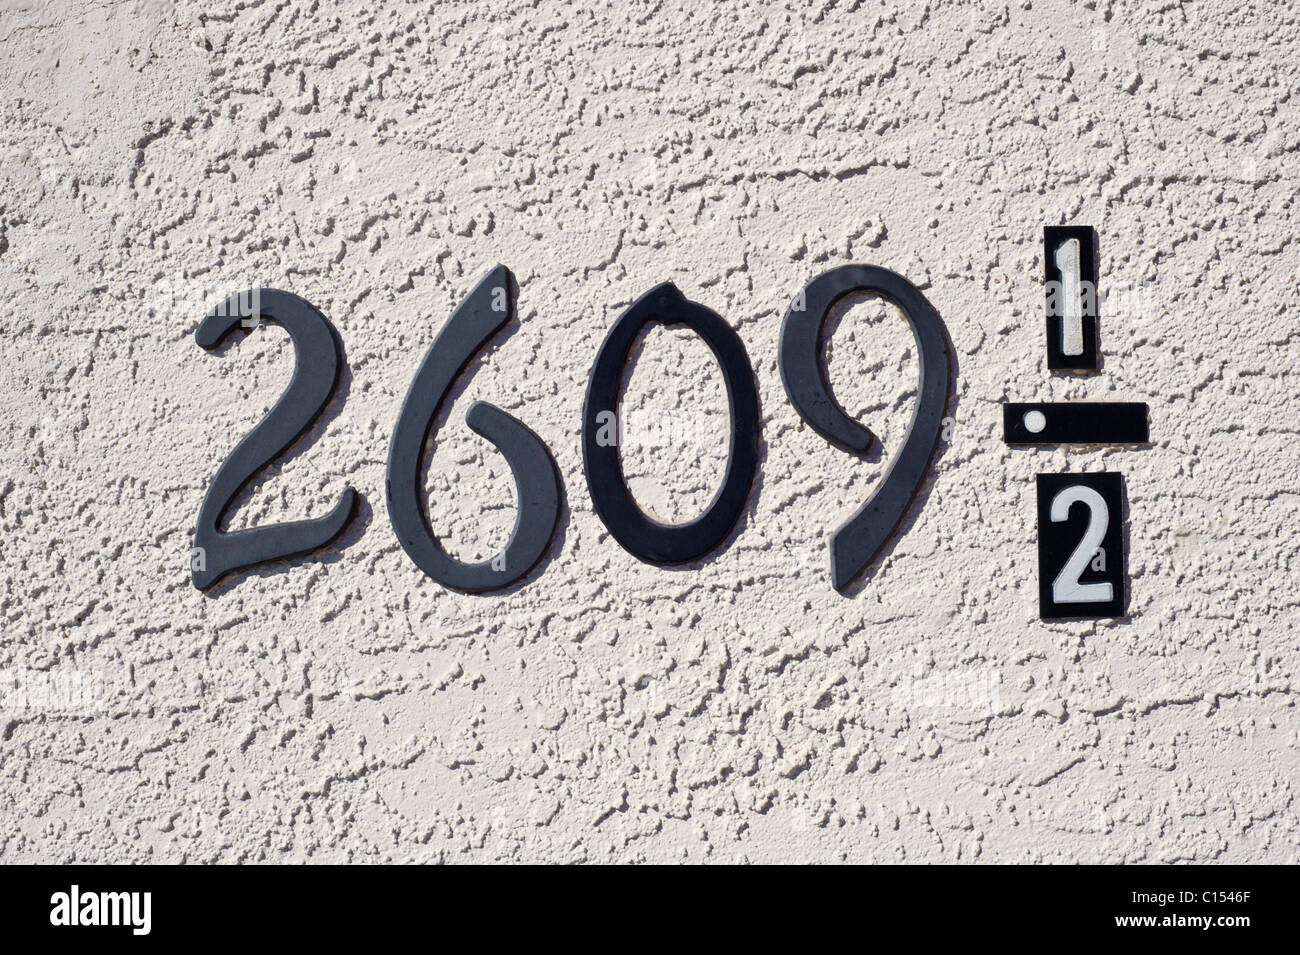 An unusual address in Roswell, New Mexico. - Stock Image